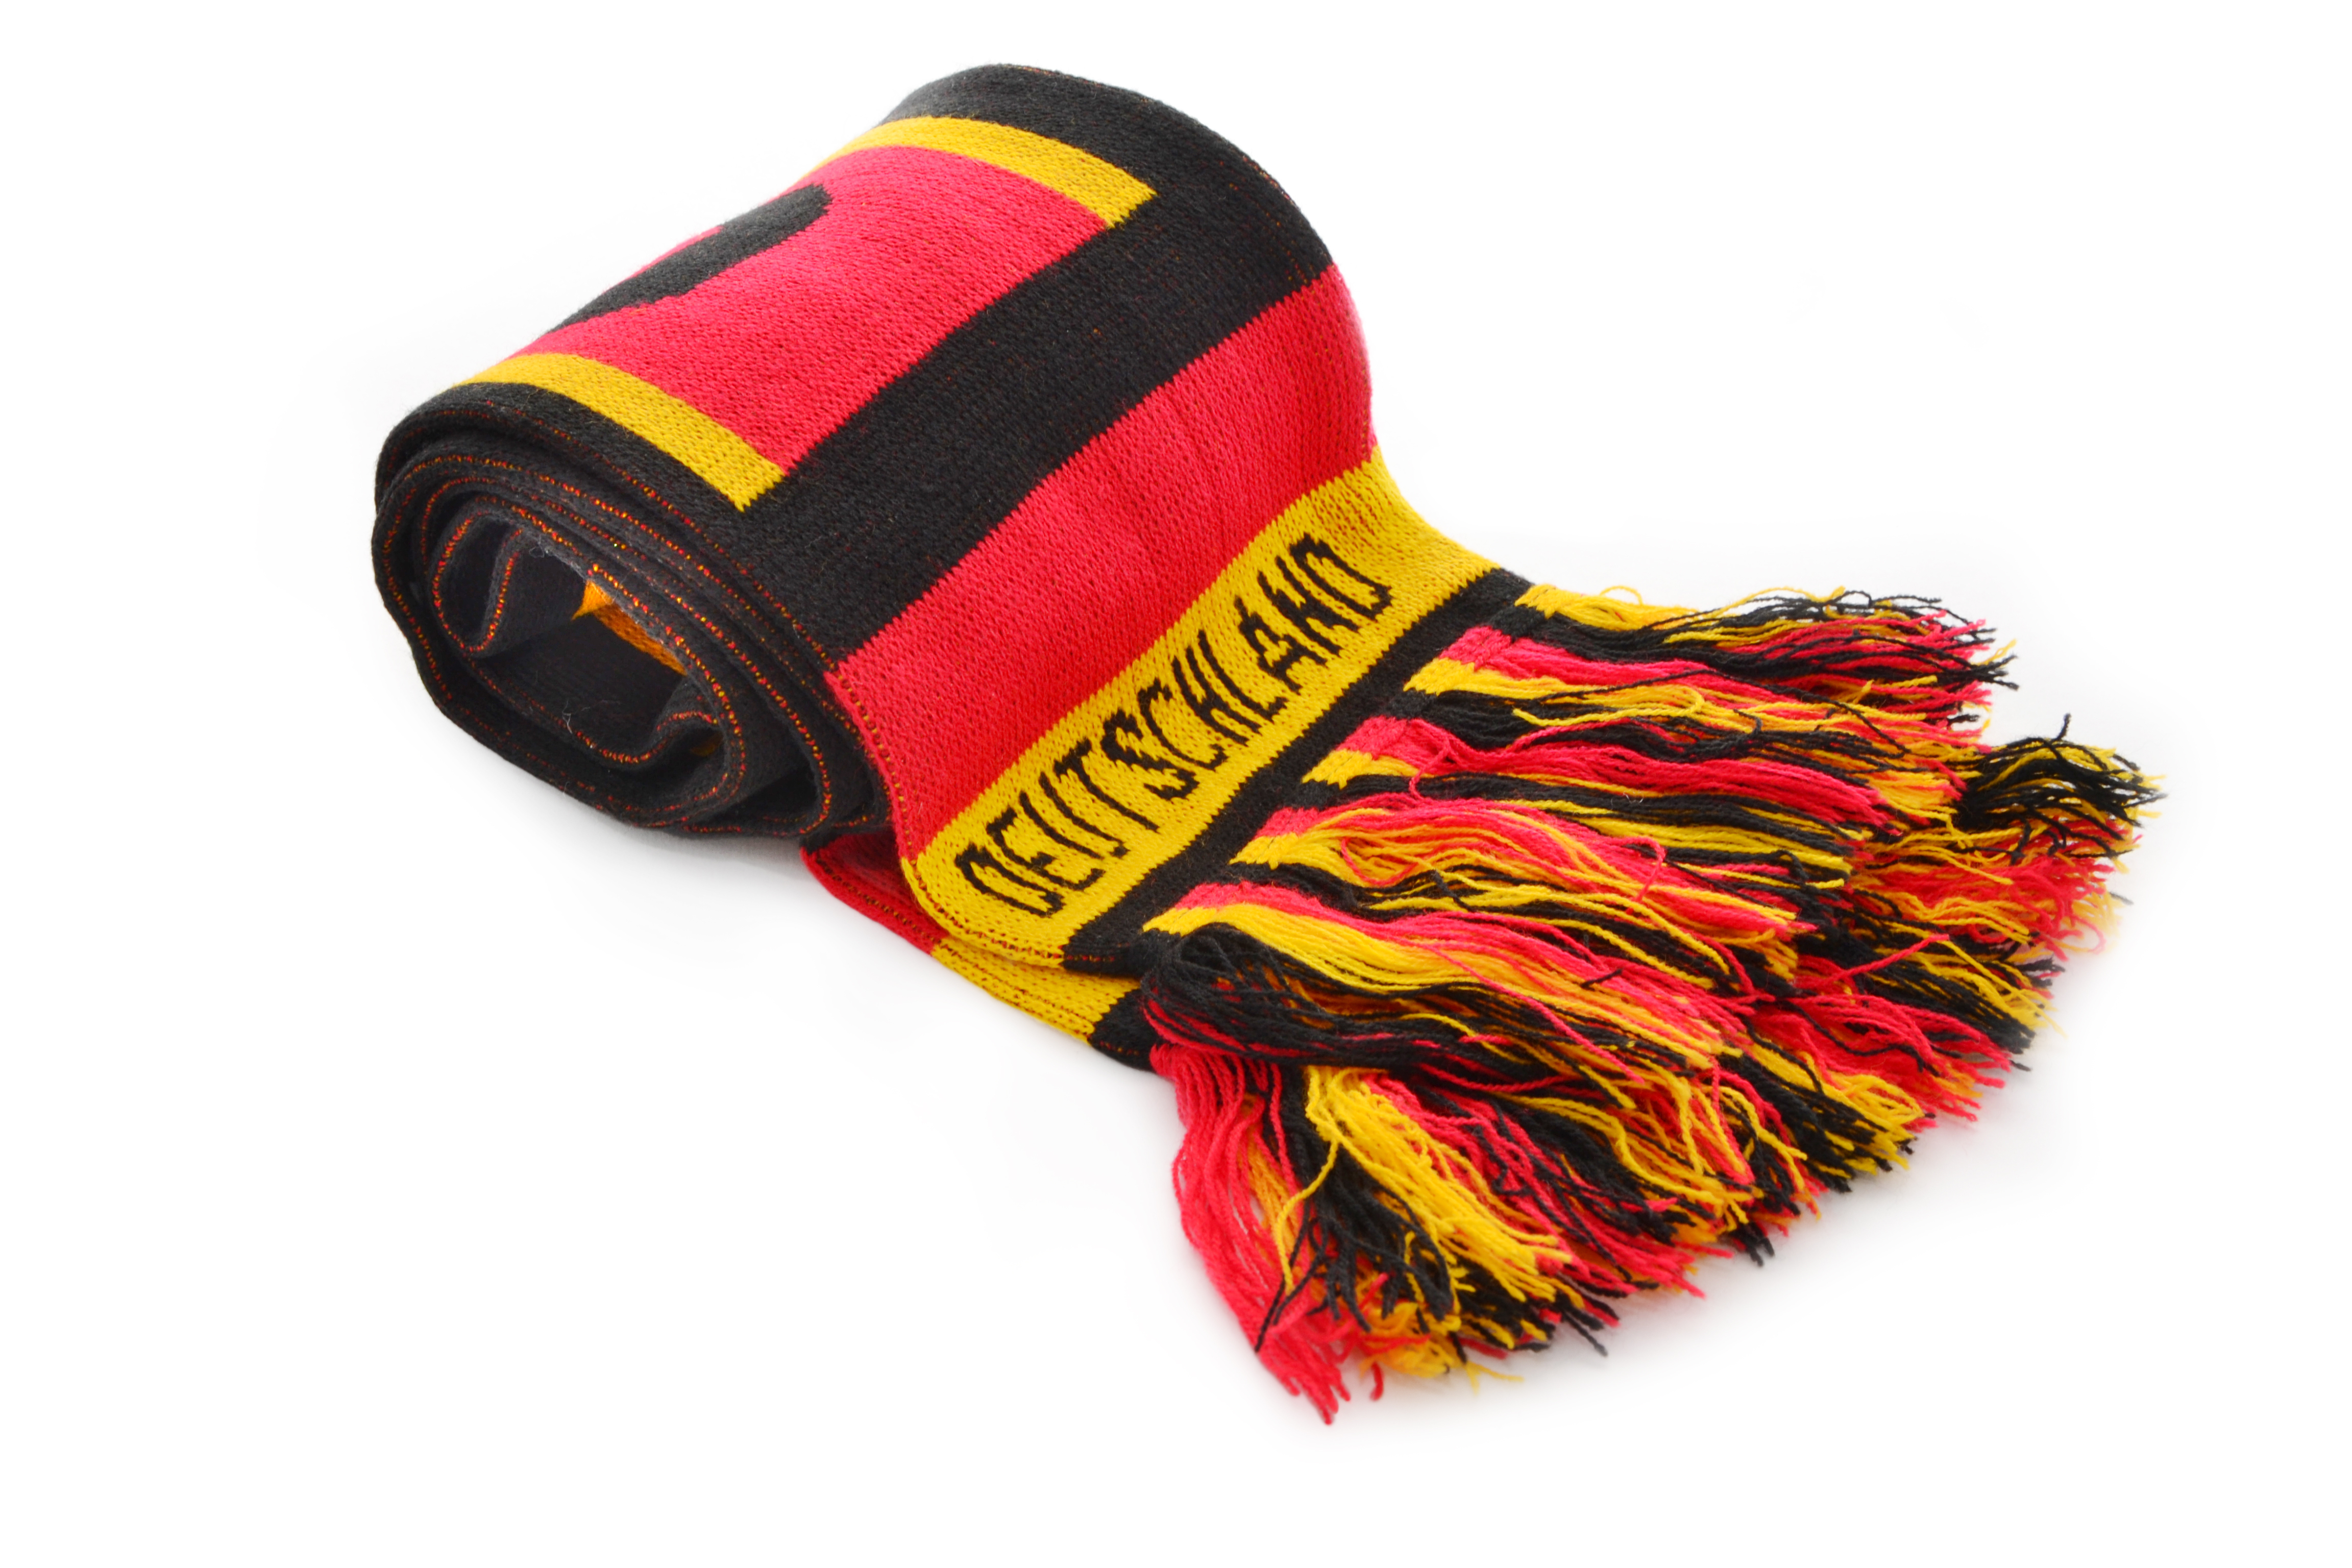 Knitted sports scarves